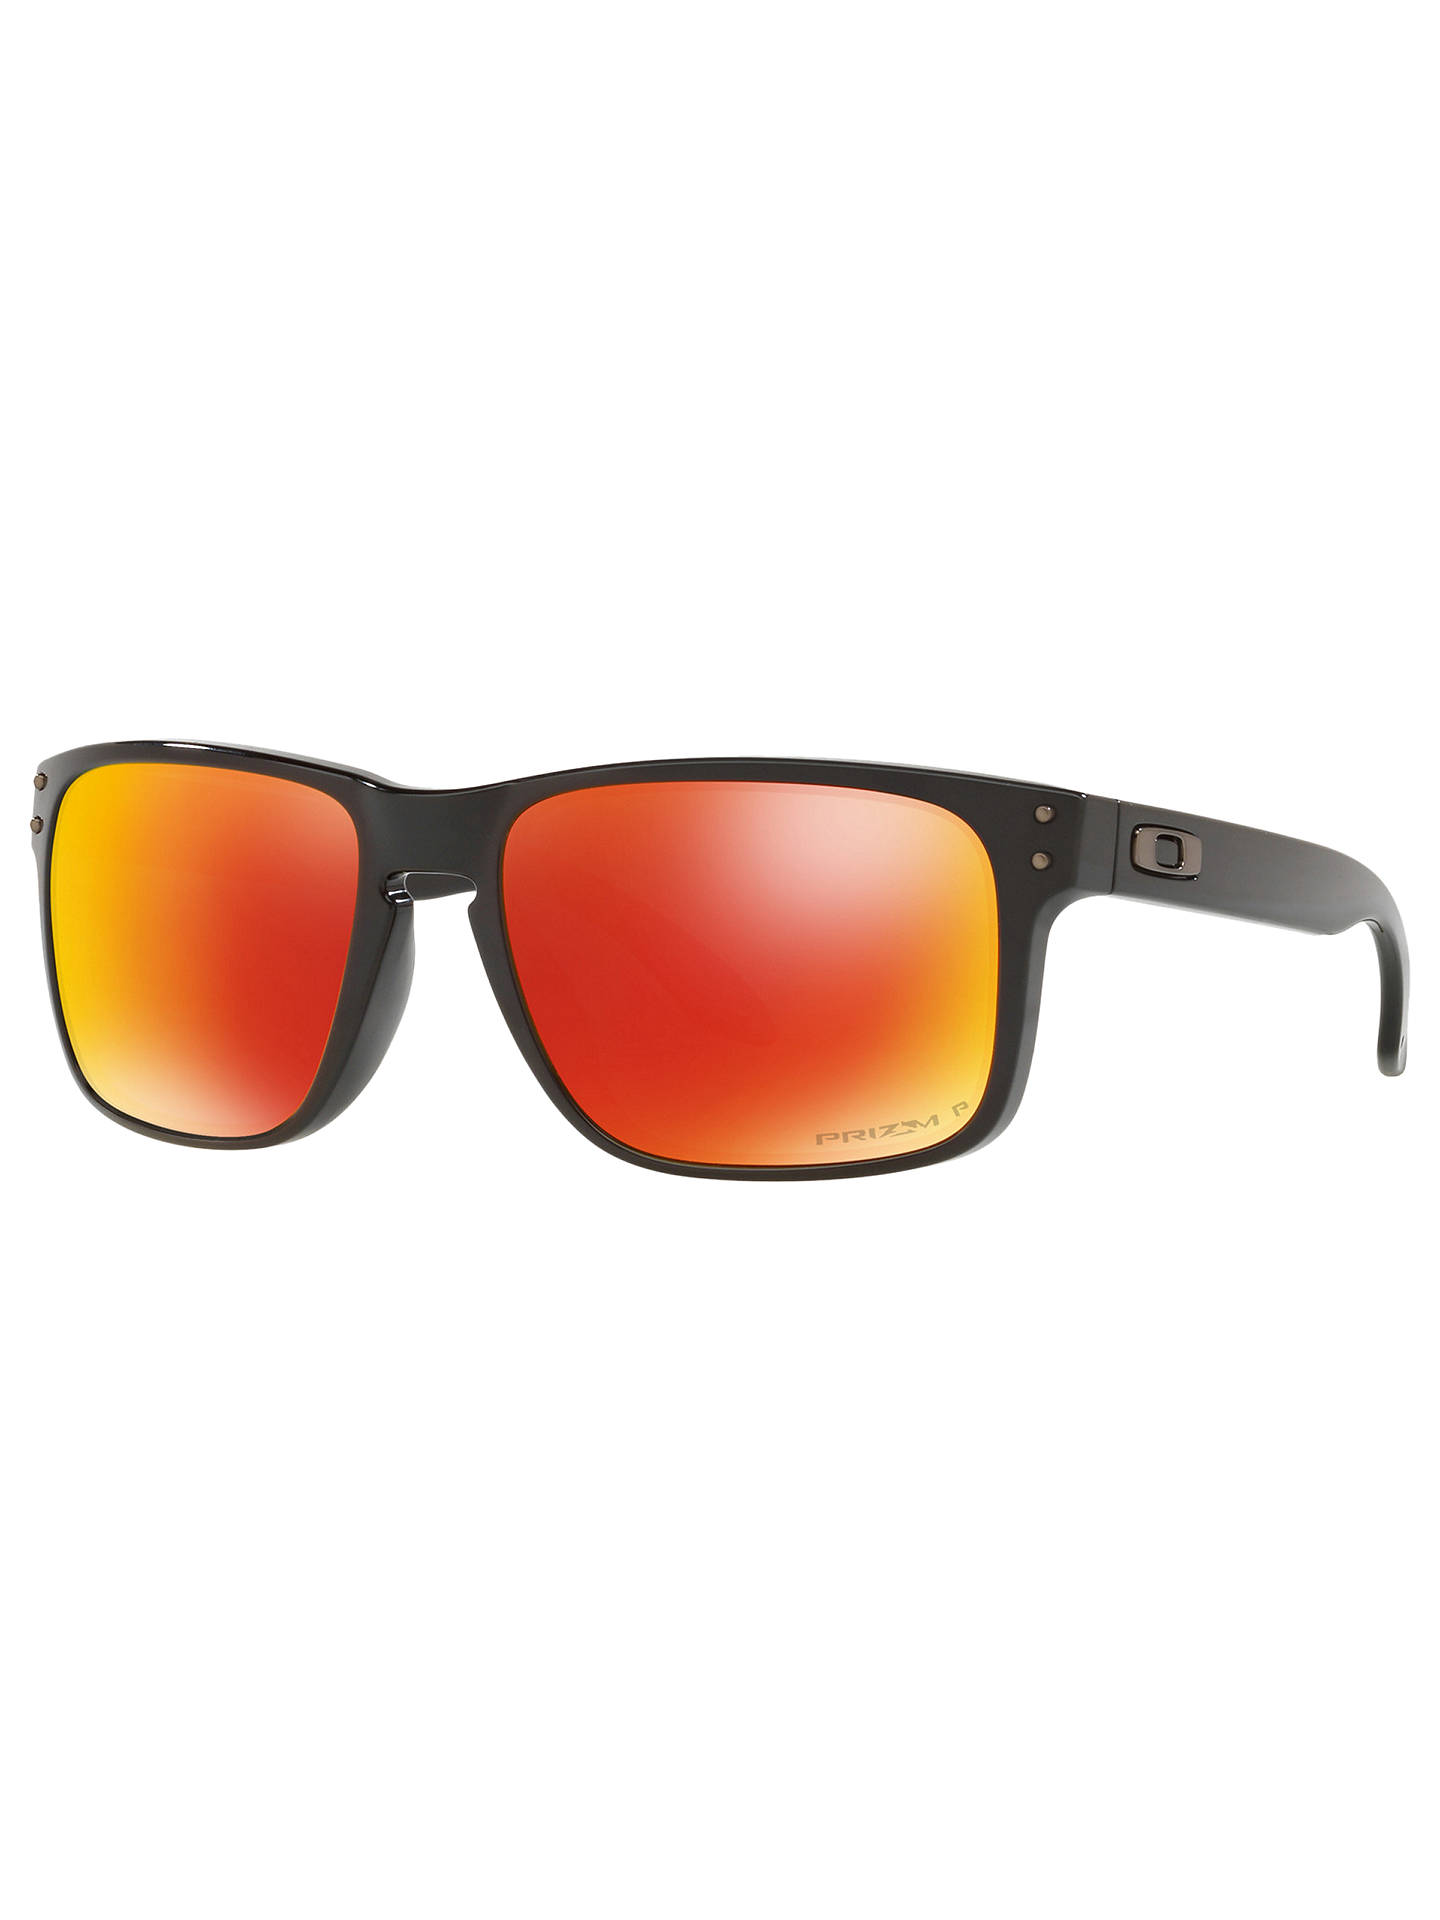 69c06bc00f5 Oakley OO9102 Men s Holbrook Prizm Polarised Square Sunglasses at ...